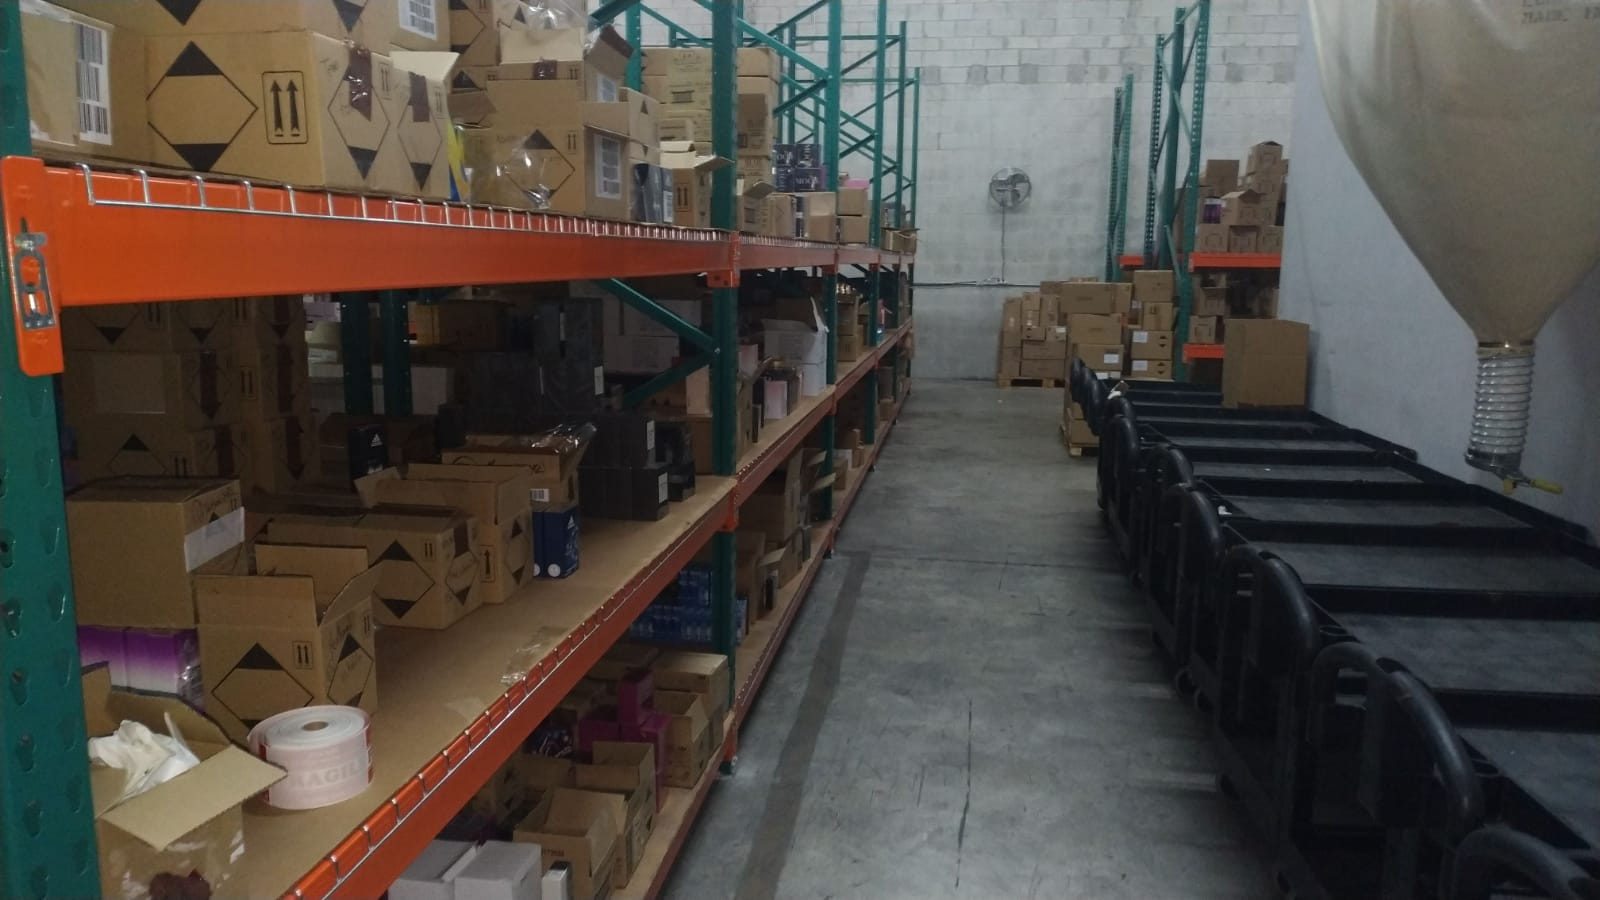 warehouse-image-7.jpg